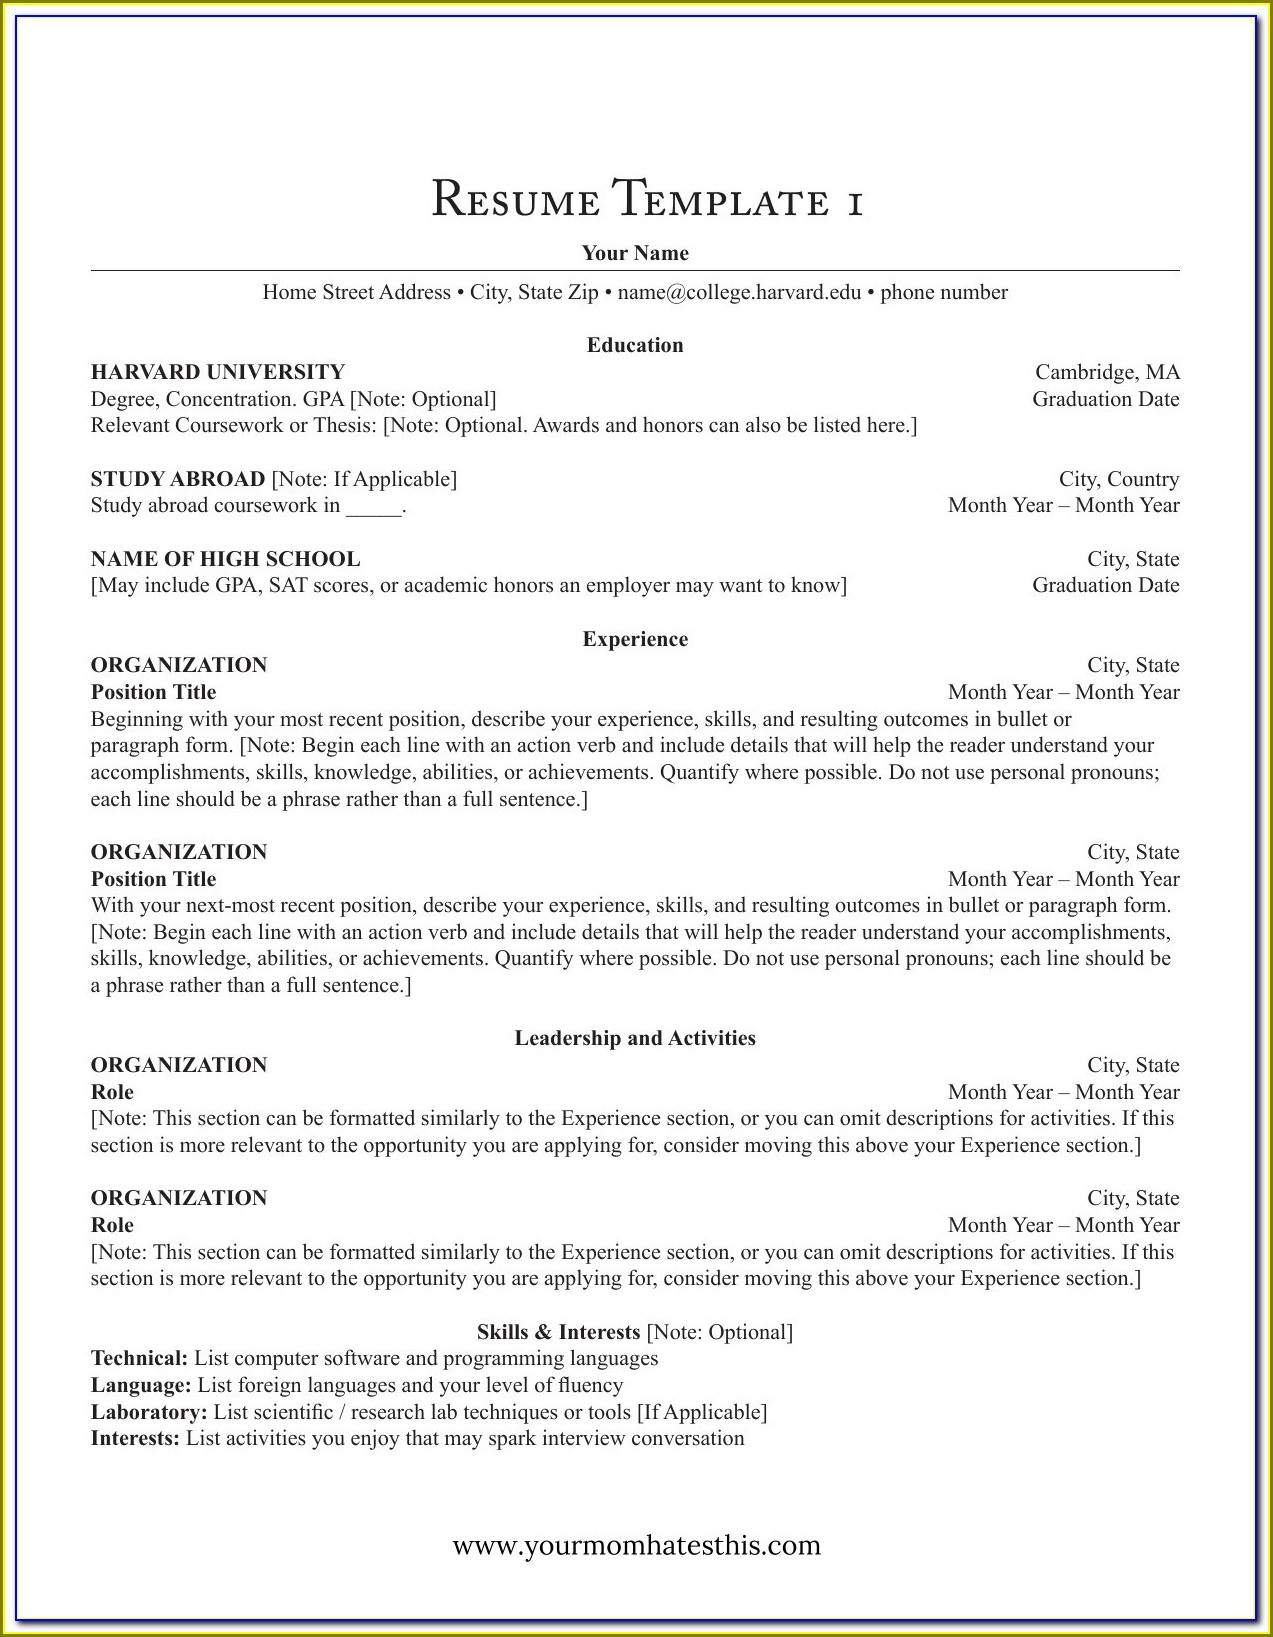 Blank Resume Form For Job Application Pdf